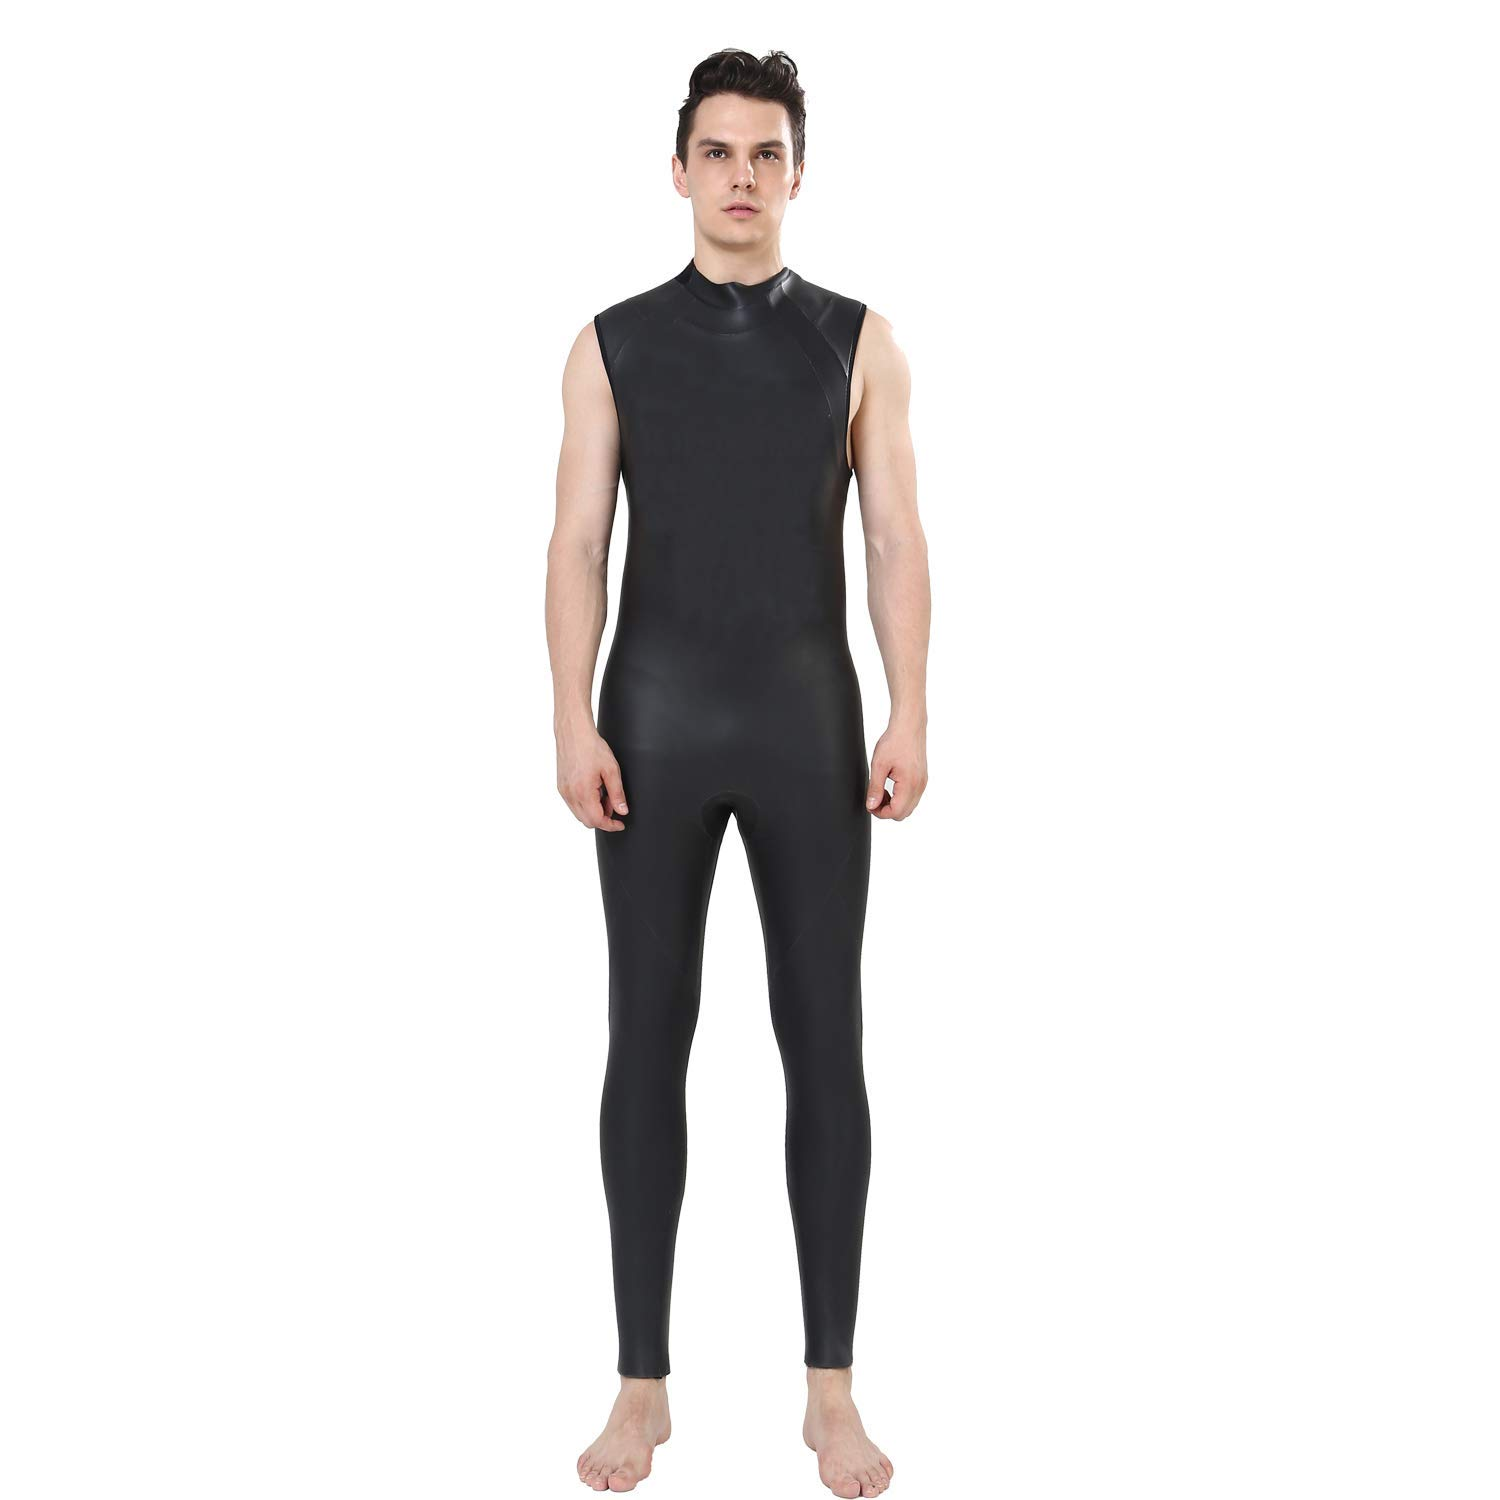 c3e0828851f Get Quotations · FLEXELL Sleeveless Wetsuit Mens 5mm CR Neoprene Diving  Suit Boys Smooth Skin One Piece Snorkeling Swimming